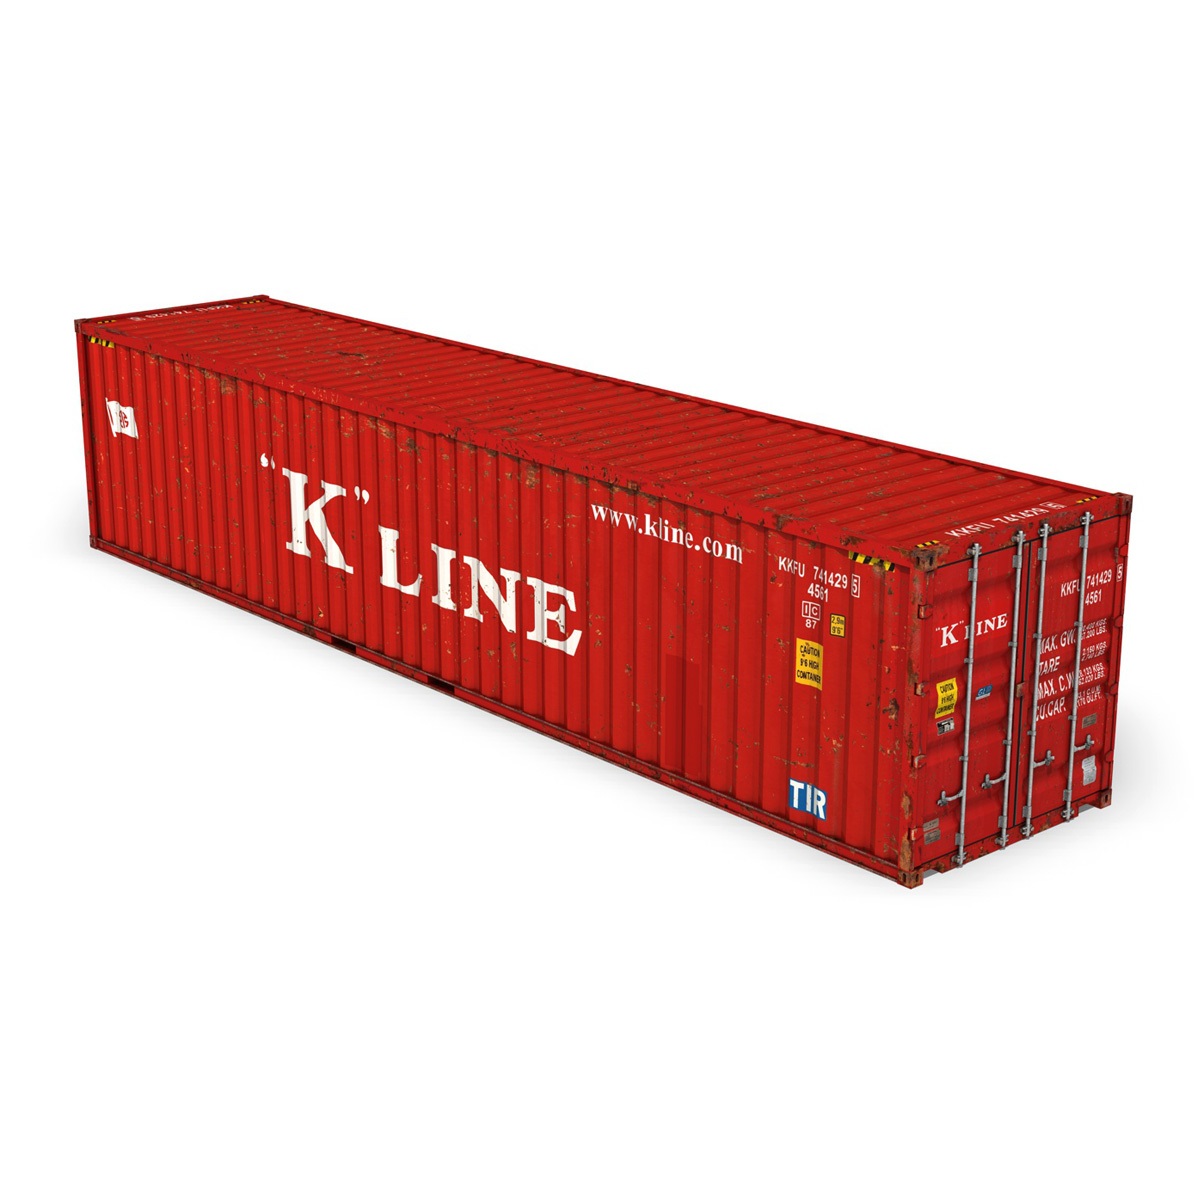 40ft shipping container – k line 3d model 3ds fbx lwo lw lws obj c4d 265116